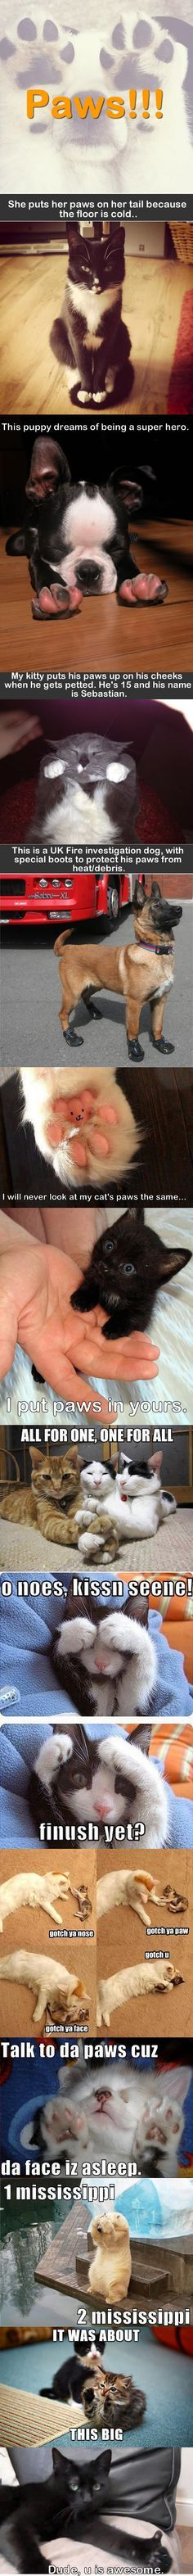 Paws!!!! cute paws of puppies and kitten